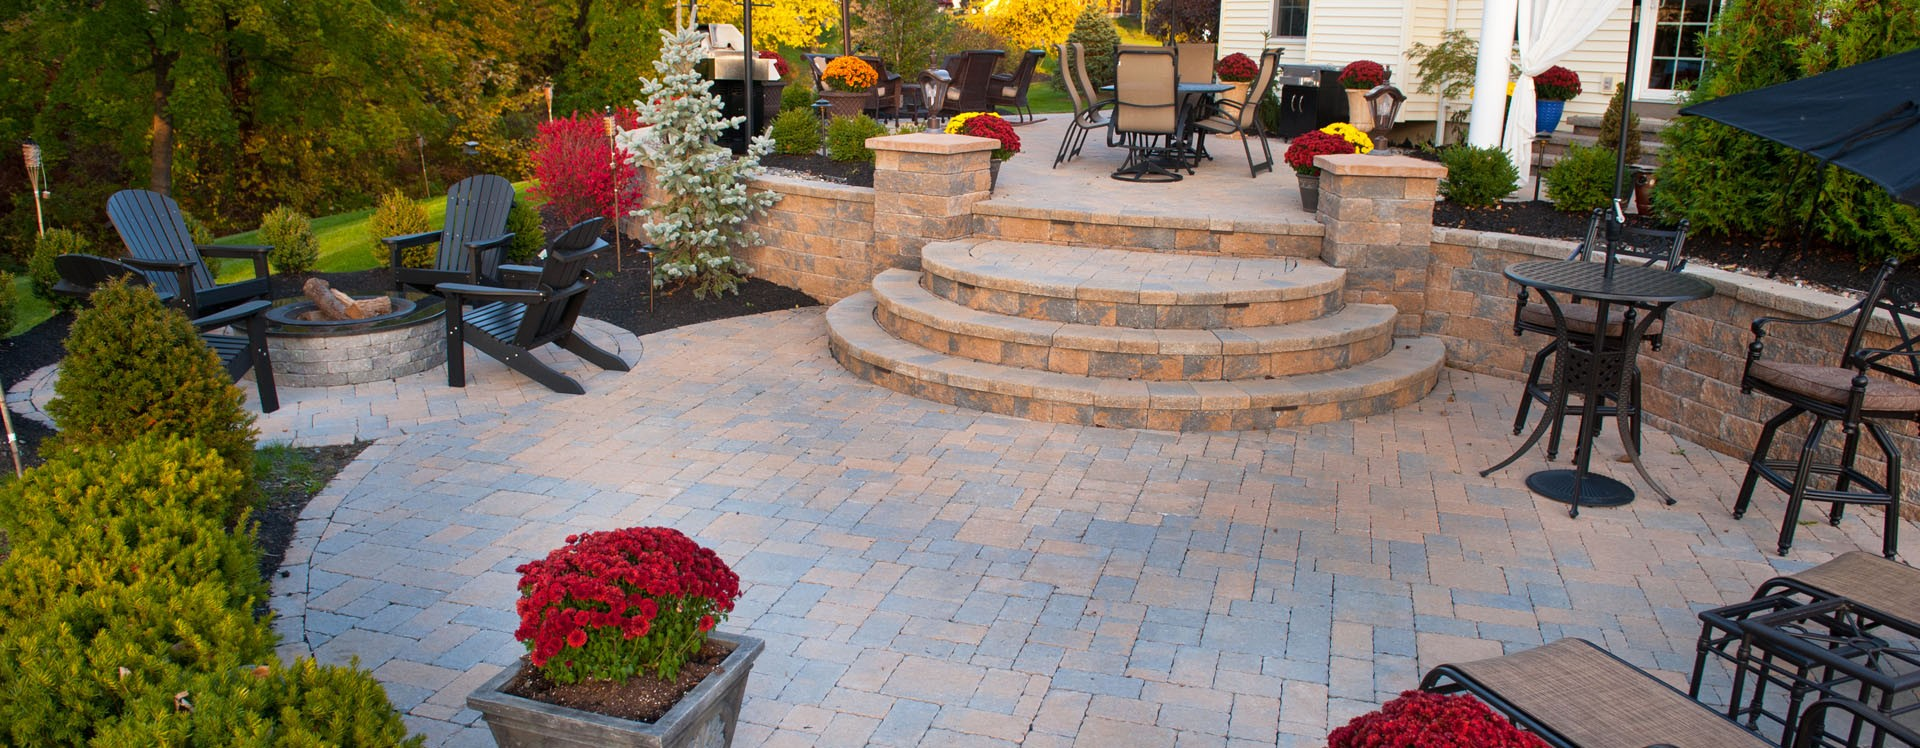 Landscape incorporated hardscape design services for Landscape design services